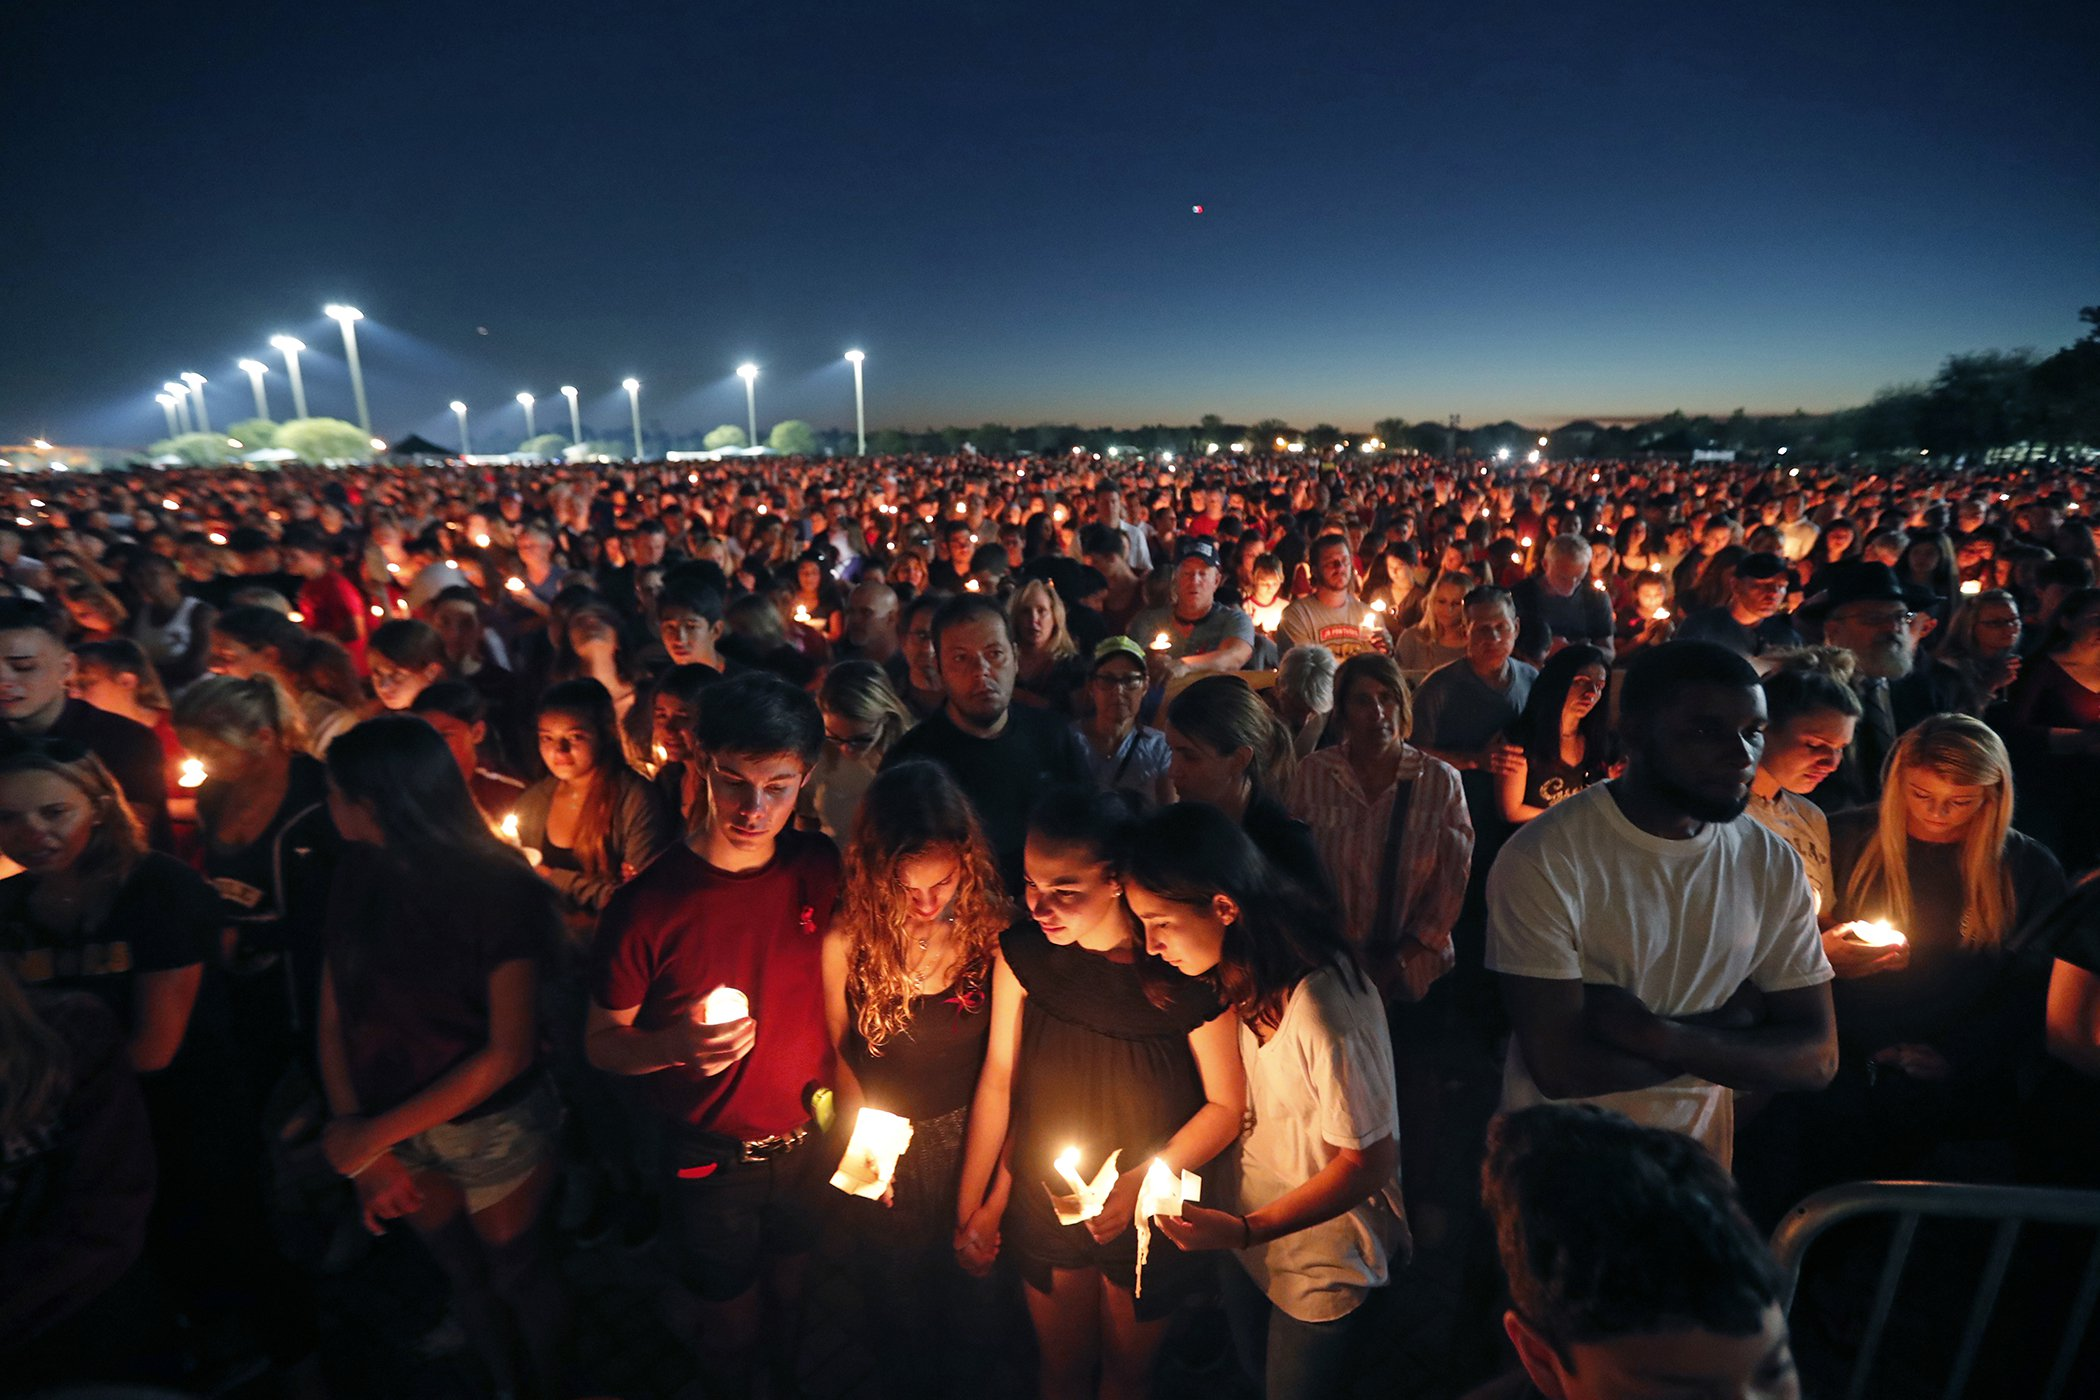 Florida-School-Shooting-United-States.jpg